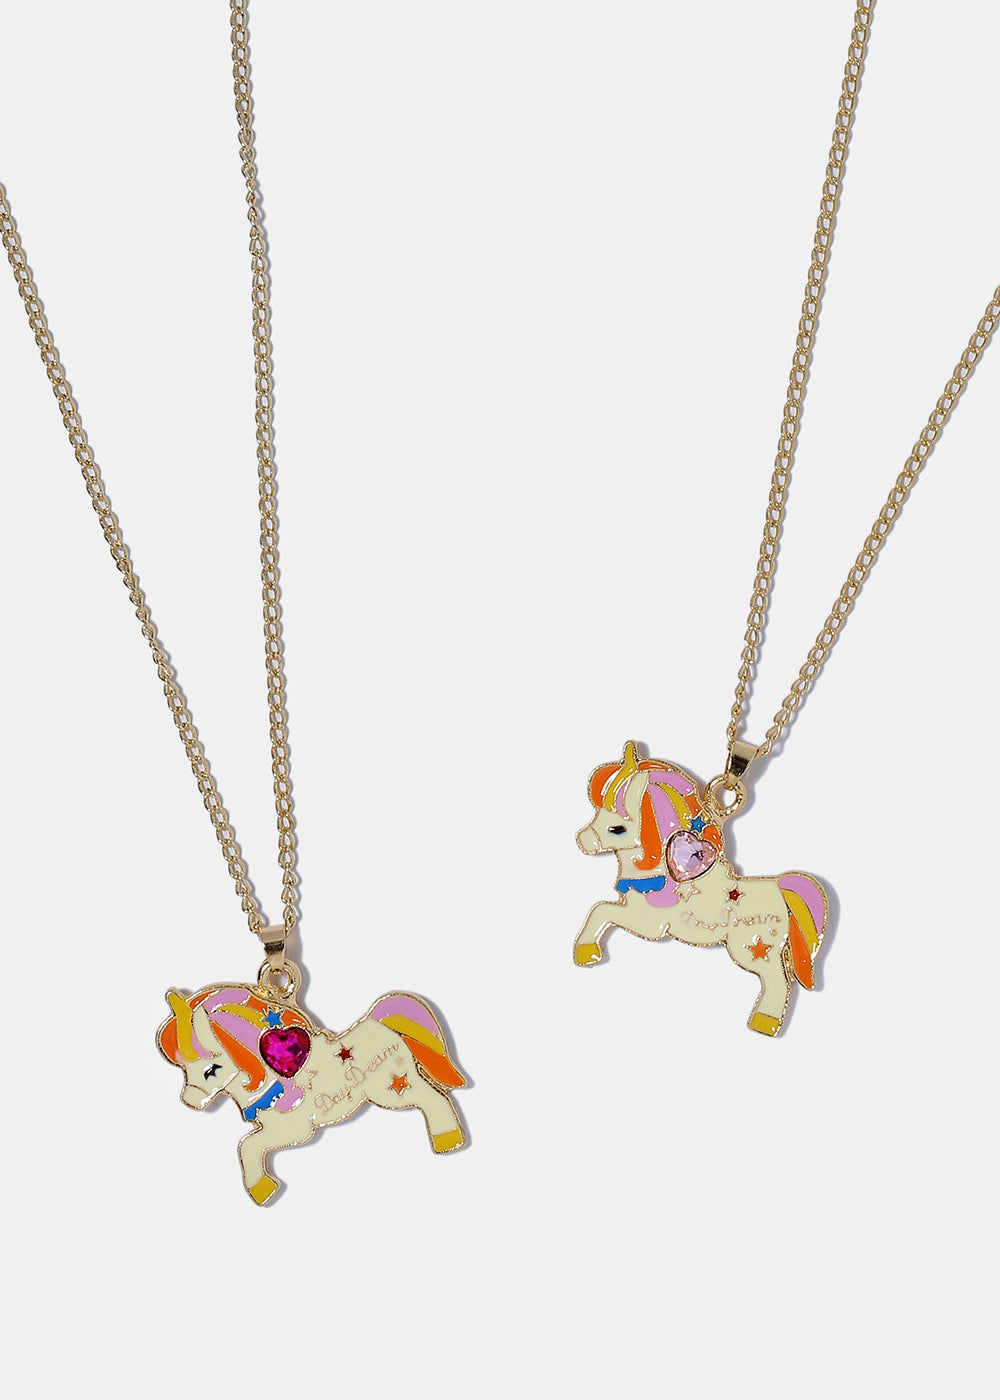 necklace products online always visible myunicornonline unicorn my com